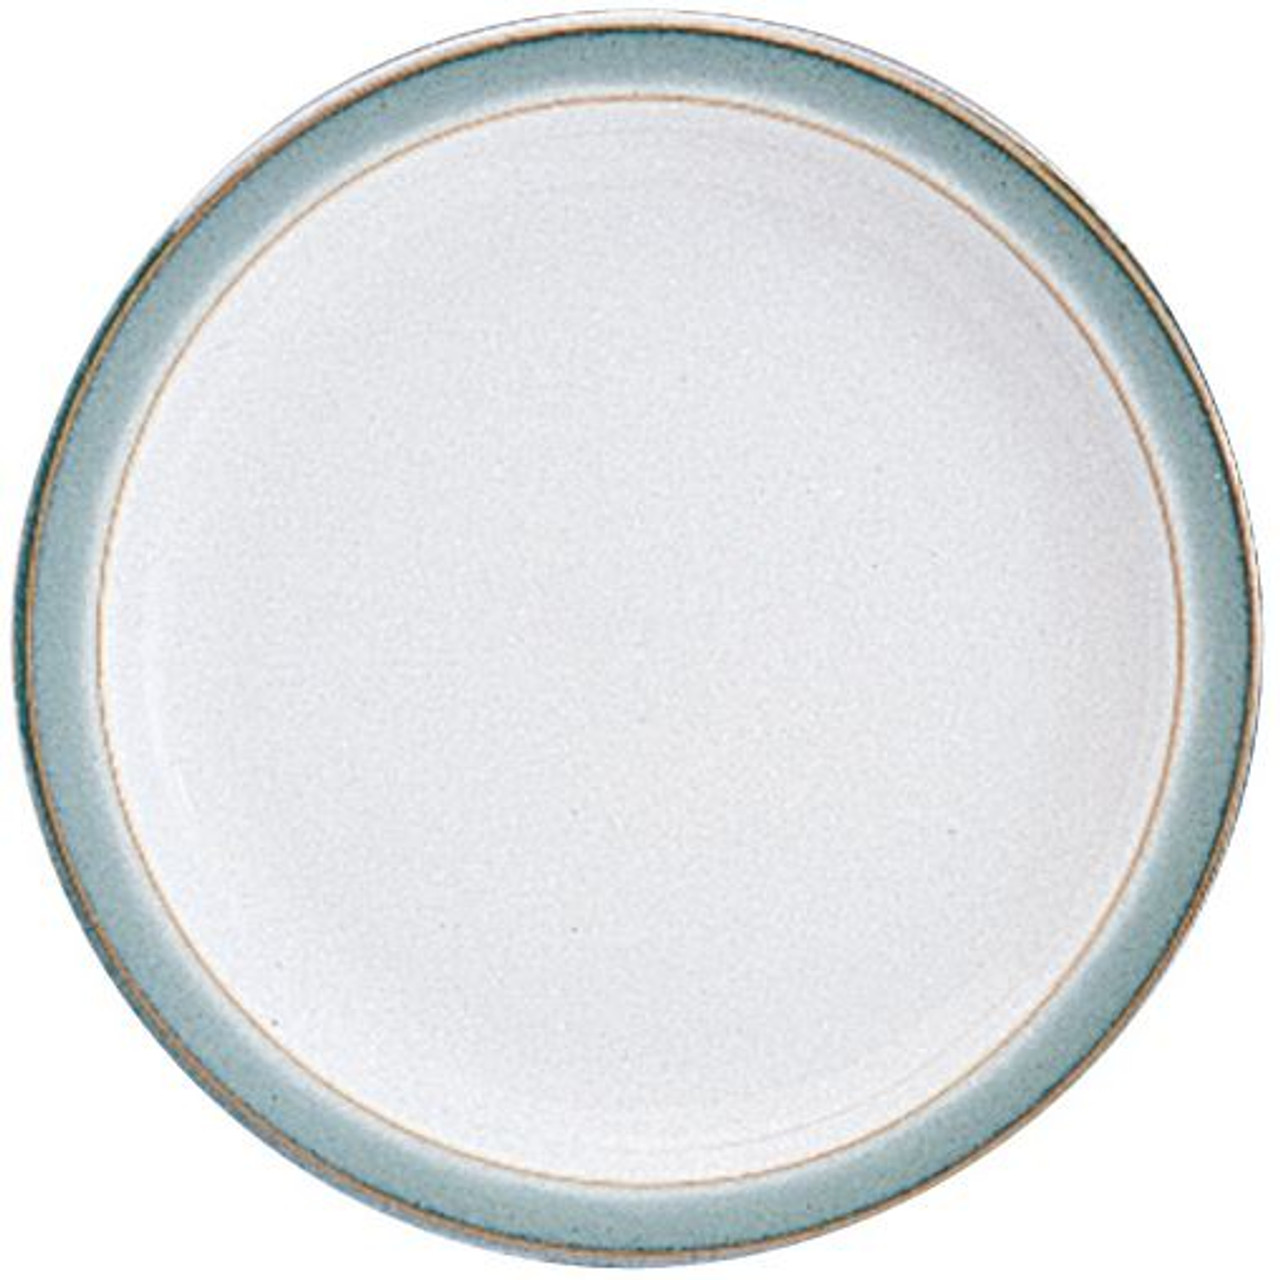 Denby Regency Green Salad Plate